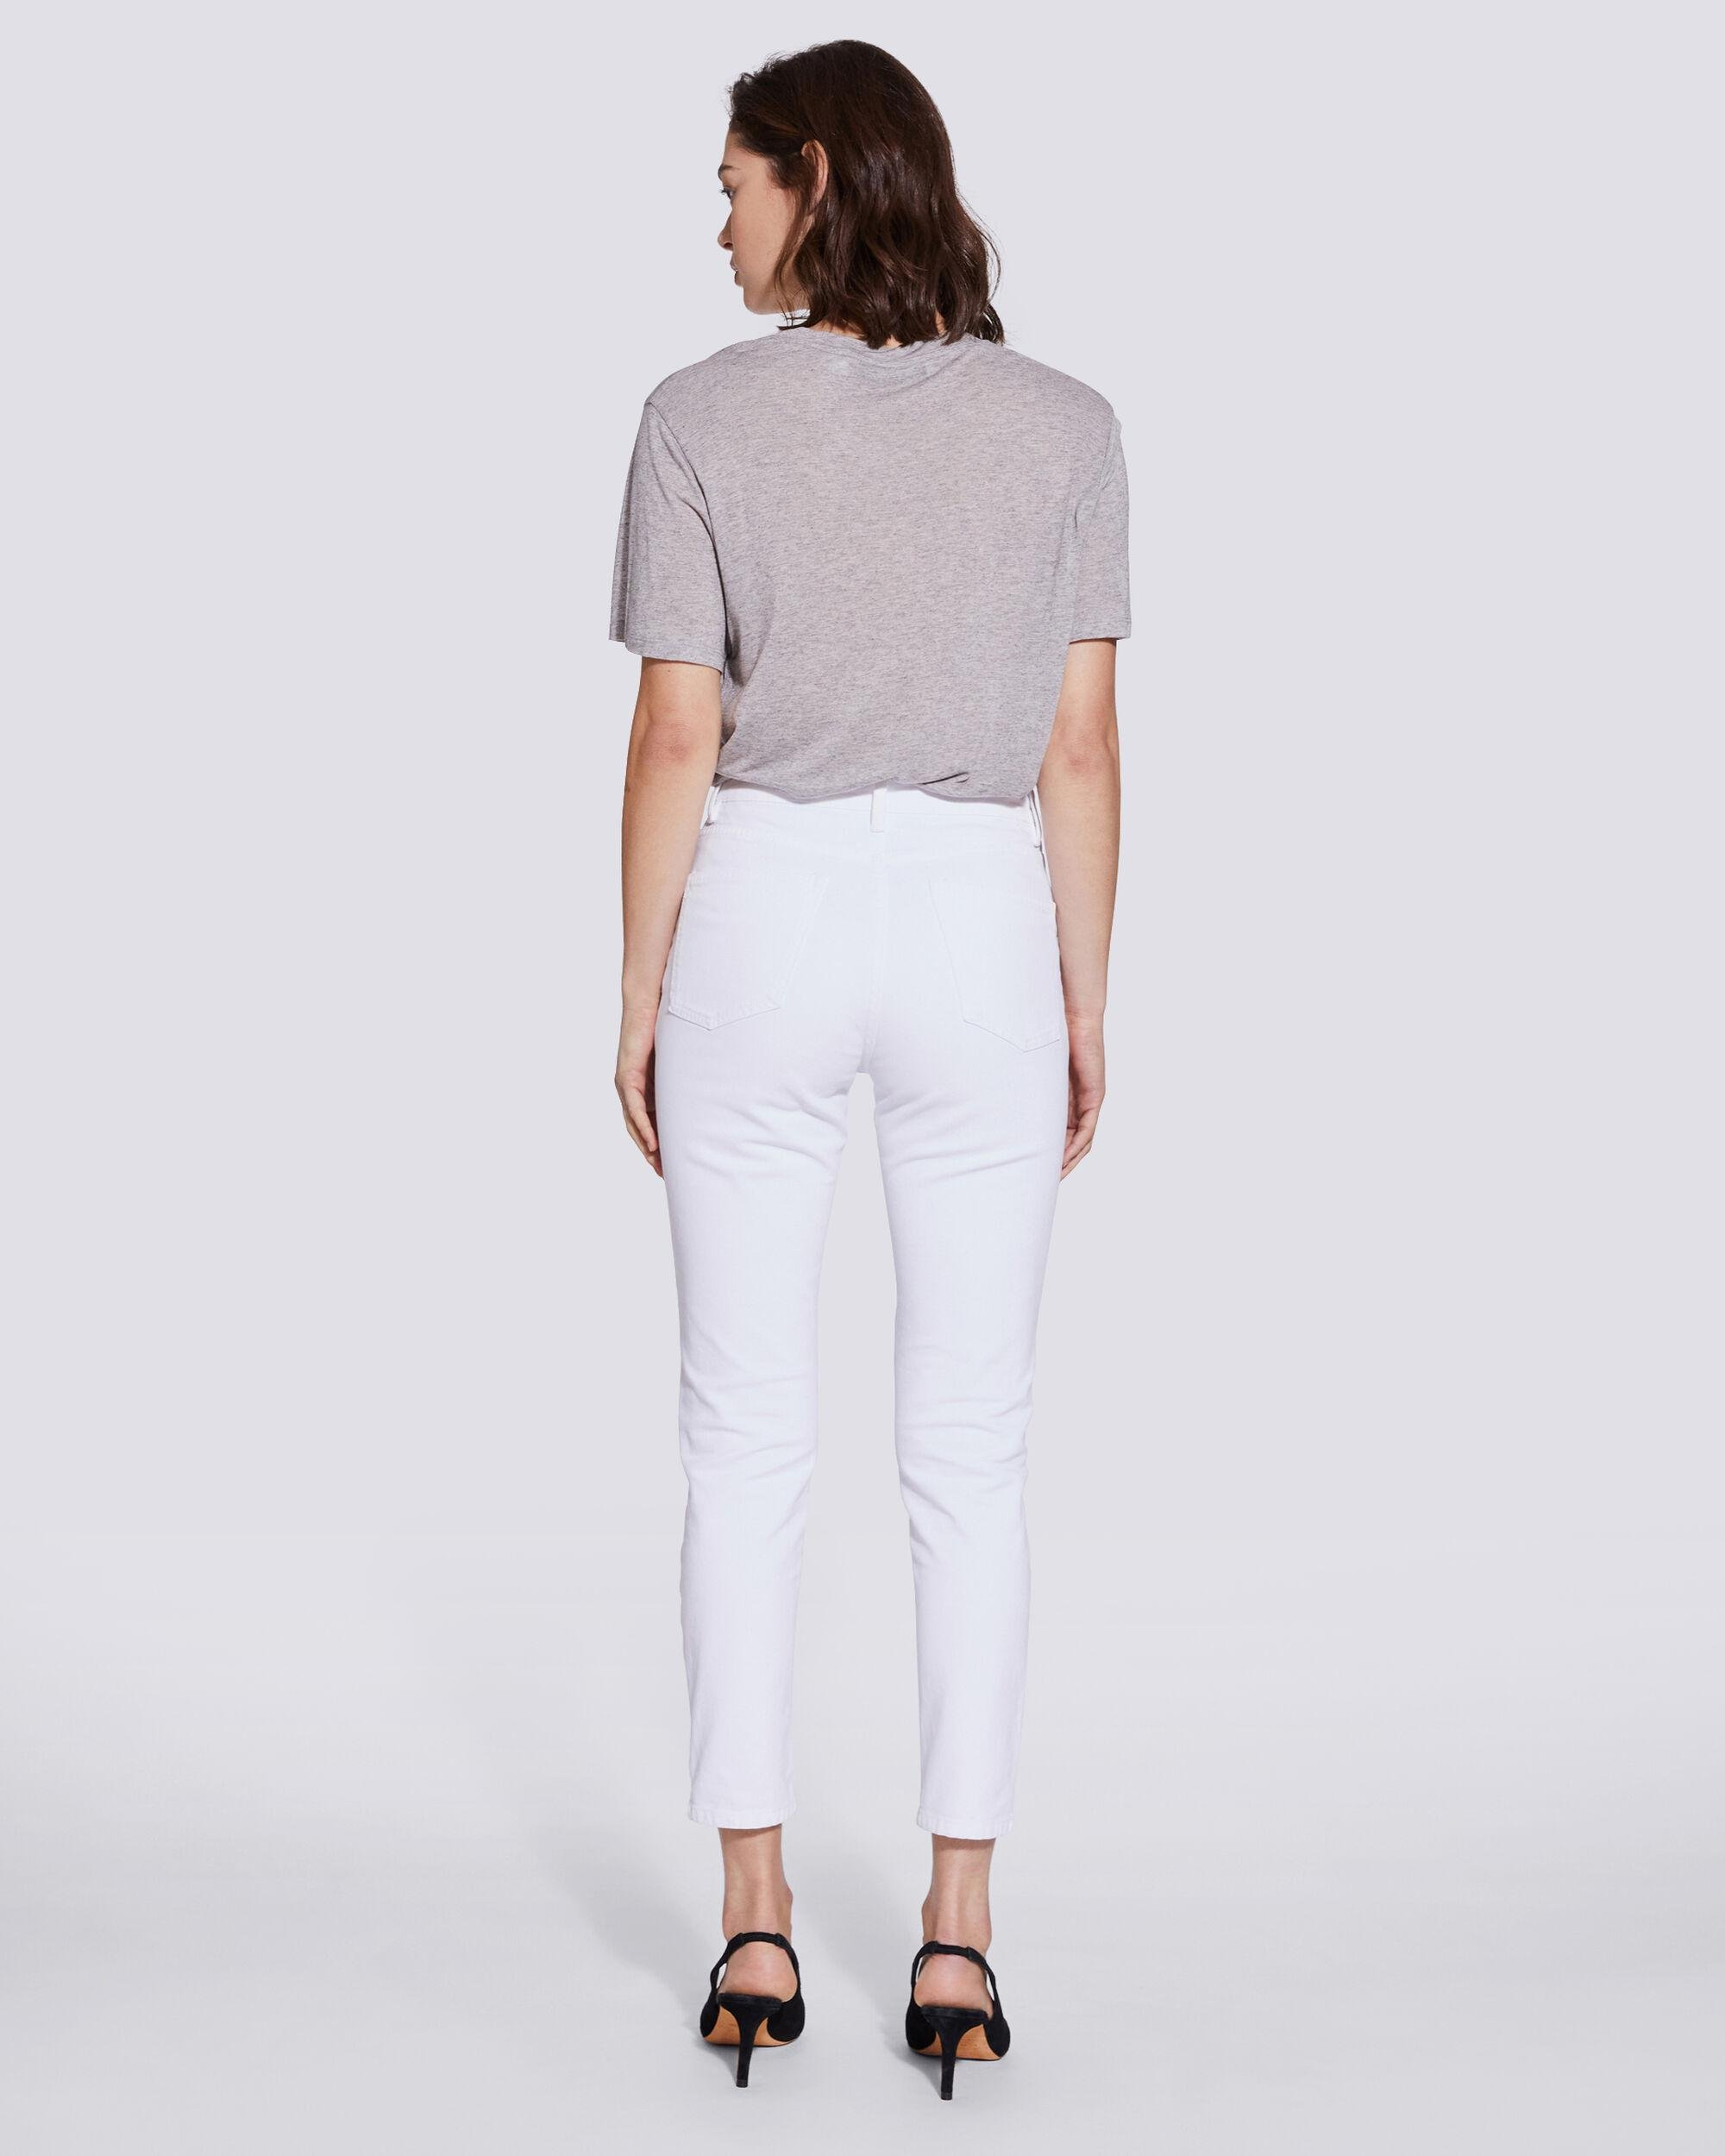 ESME HIGH RISE BUTTON FRONT CROPPED JEANS 2